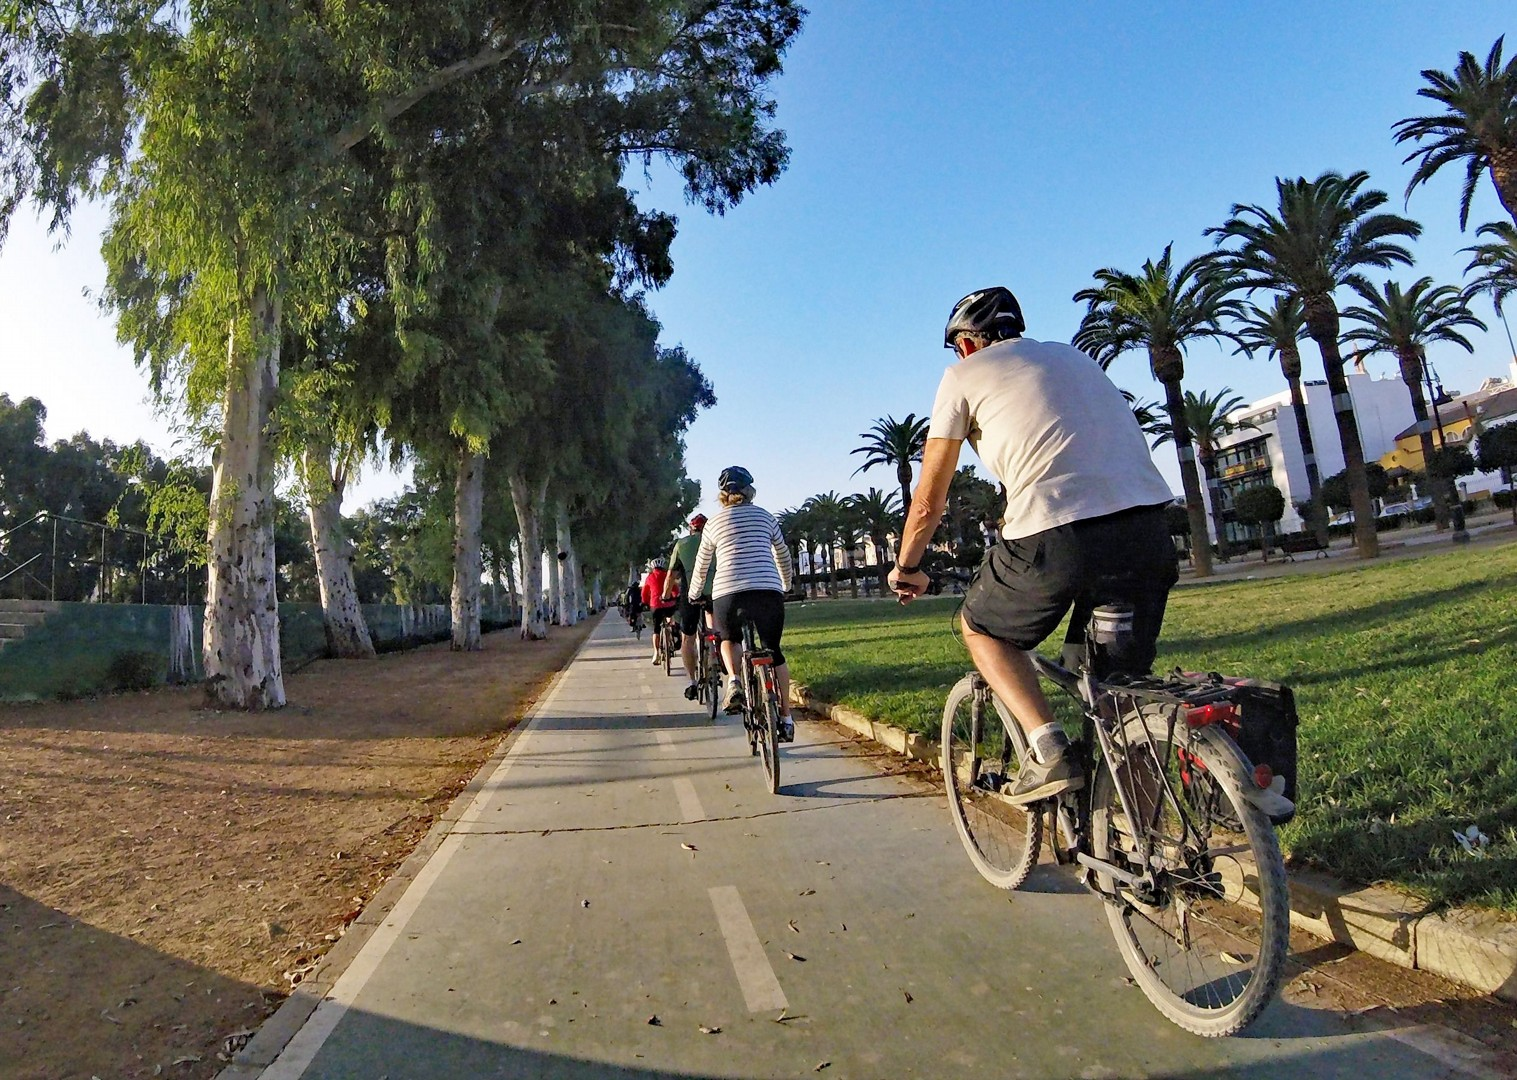 ecija-southern-spain-andalucia-leisure-cycling-trip.jpg - Spain - Andalucia - White Villages to the Ocean - Self-Guided Leisure Cycling Holiday - Leisure Cycling